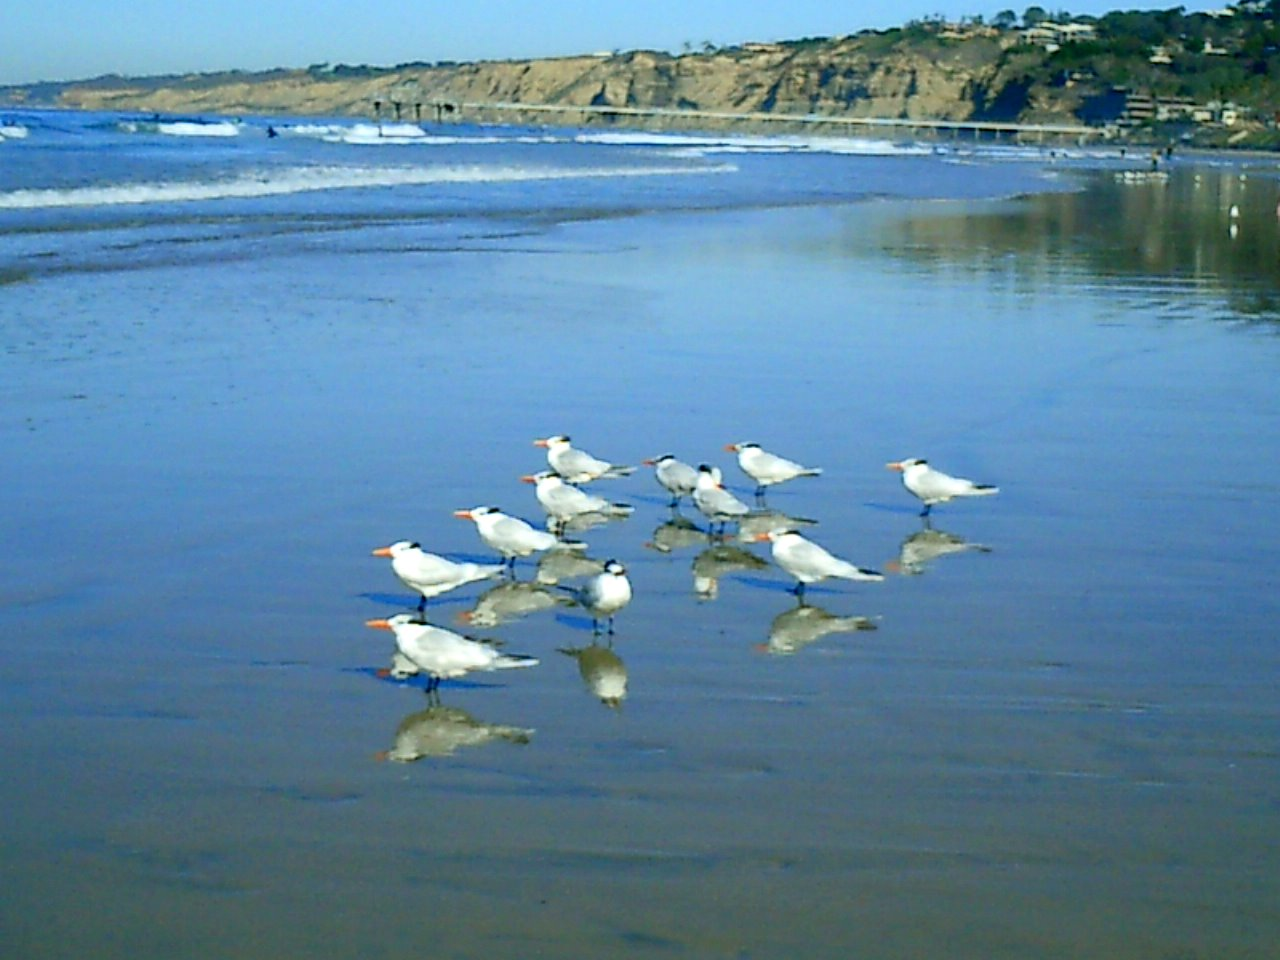 Royal terns on the beach